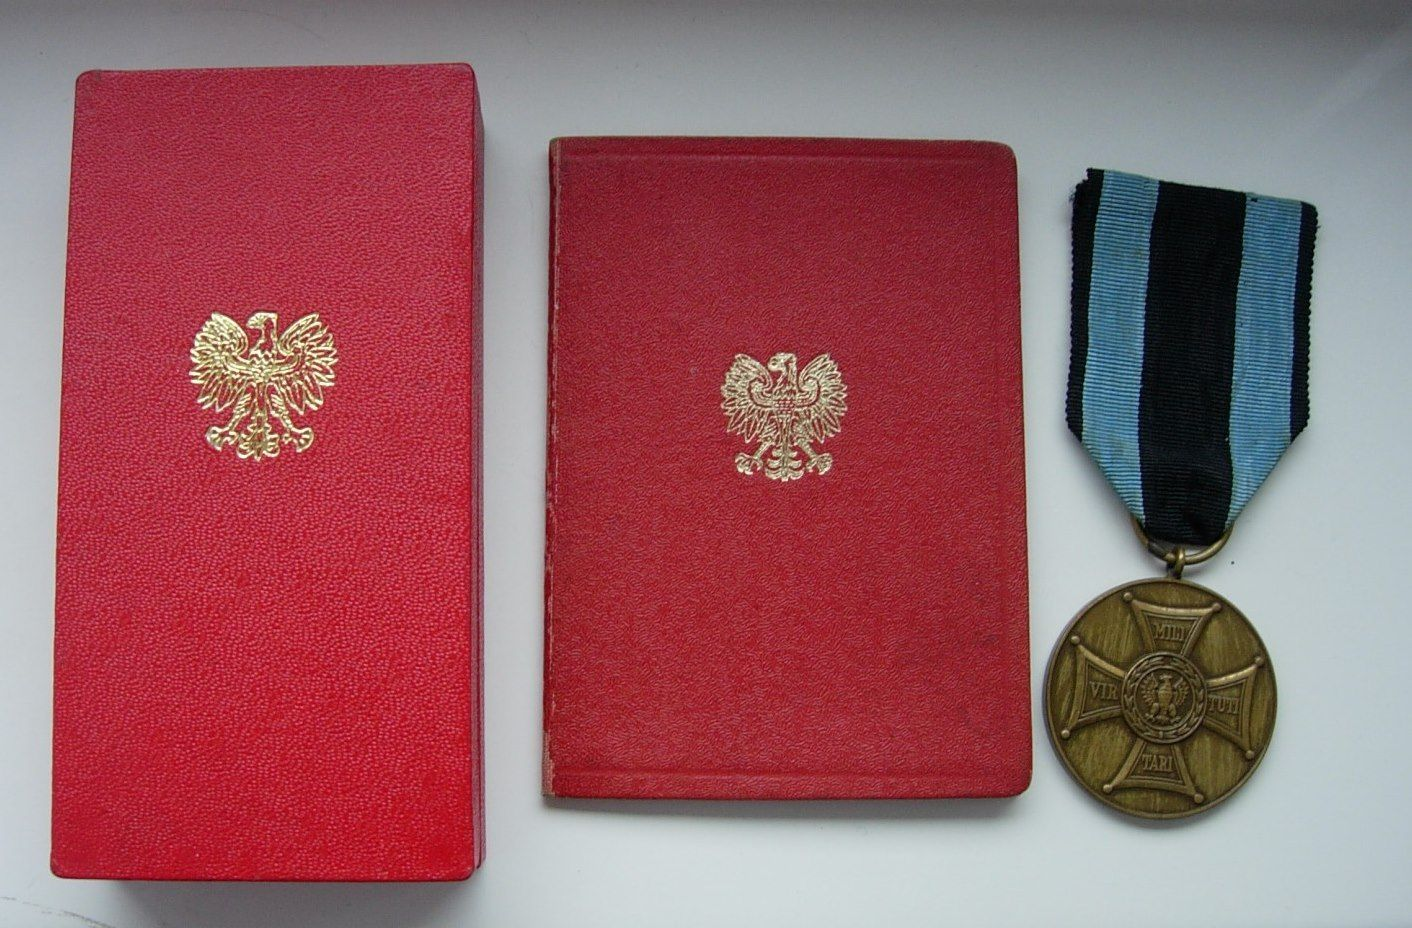 Medal for Merit on the Field of Glory (Medal Zasluzonym na Polu Chwaly), bronze, with Polish Mint mark and document of issue